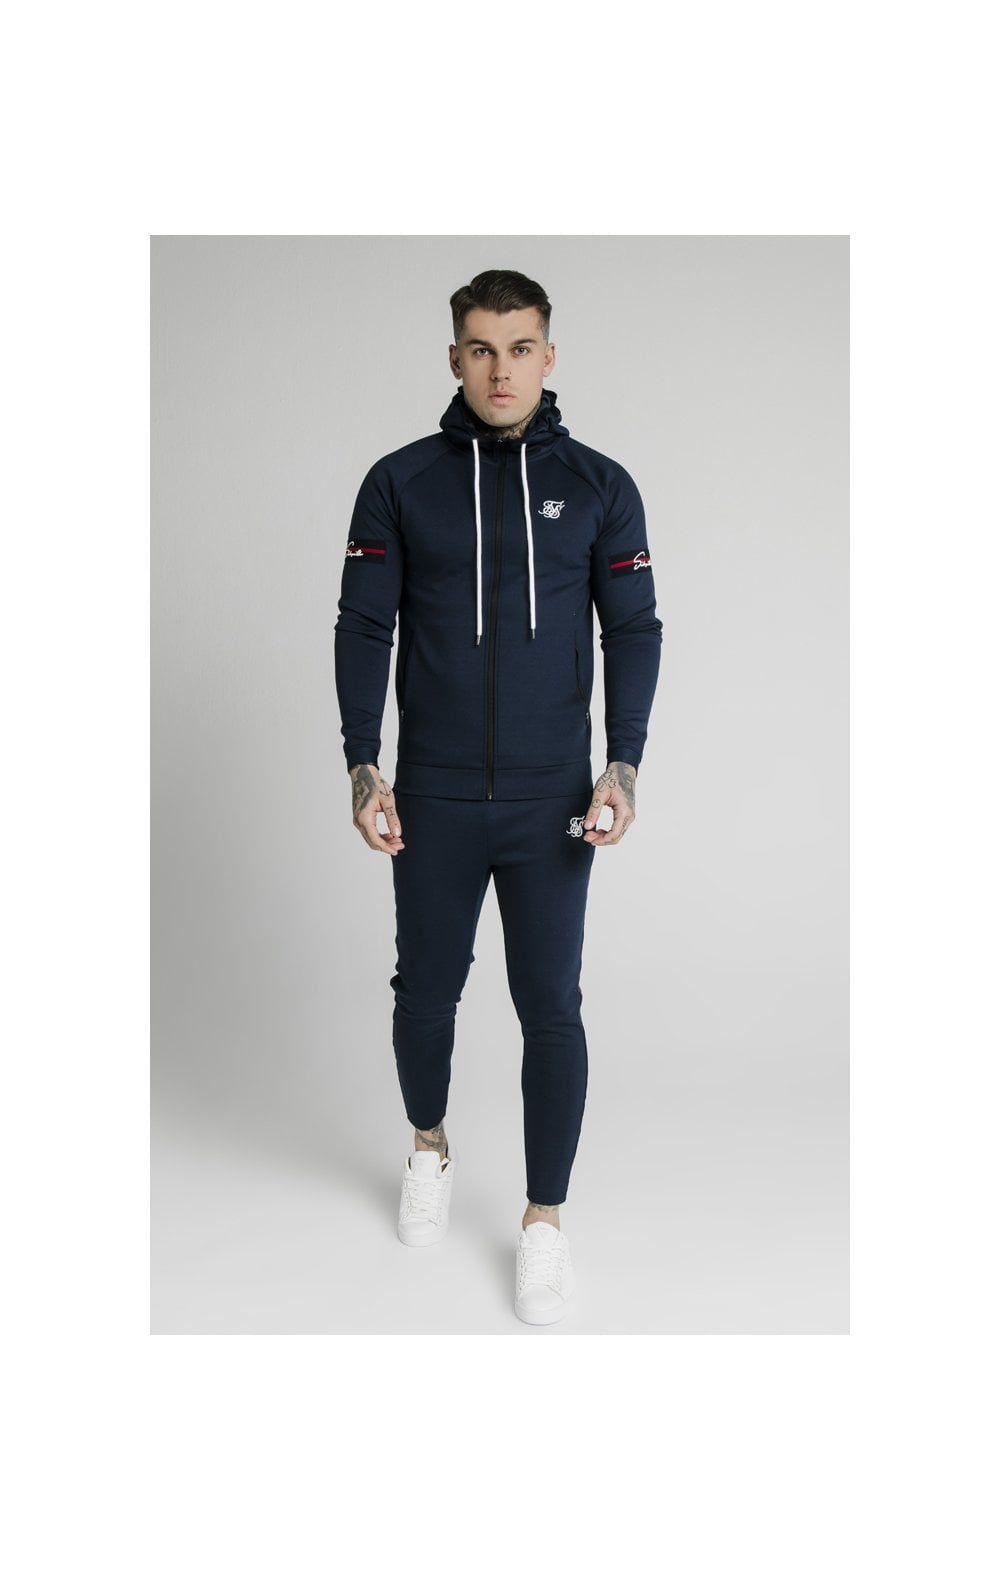 SikSilk Exposed Tape Zip Through Hoodie- Navy (2)